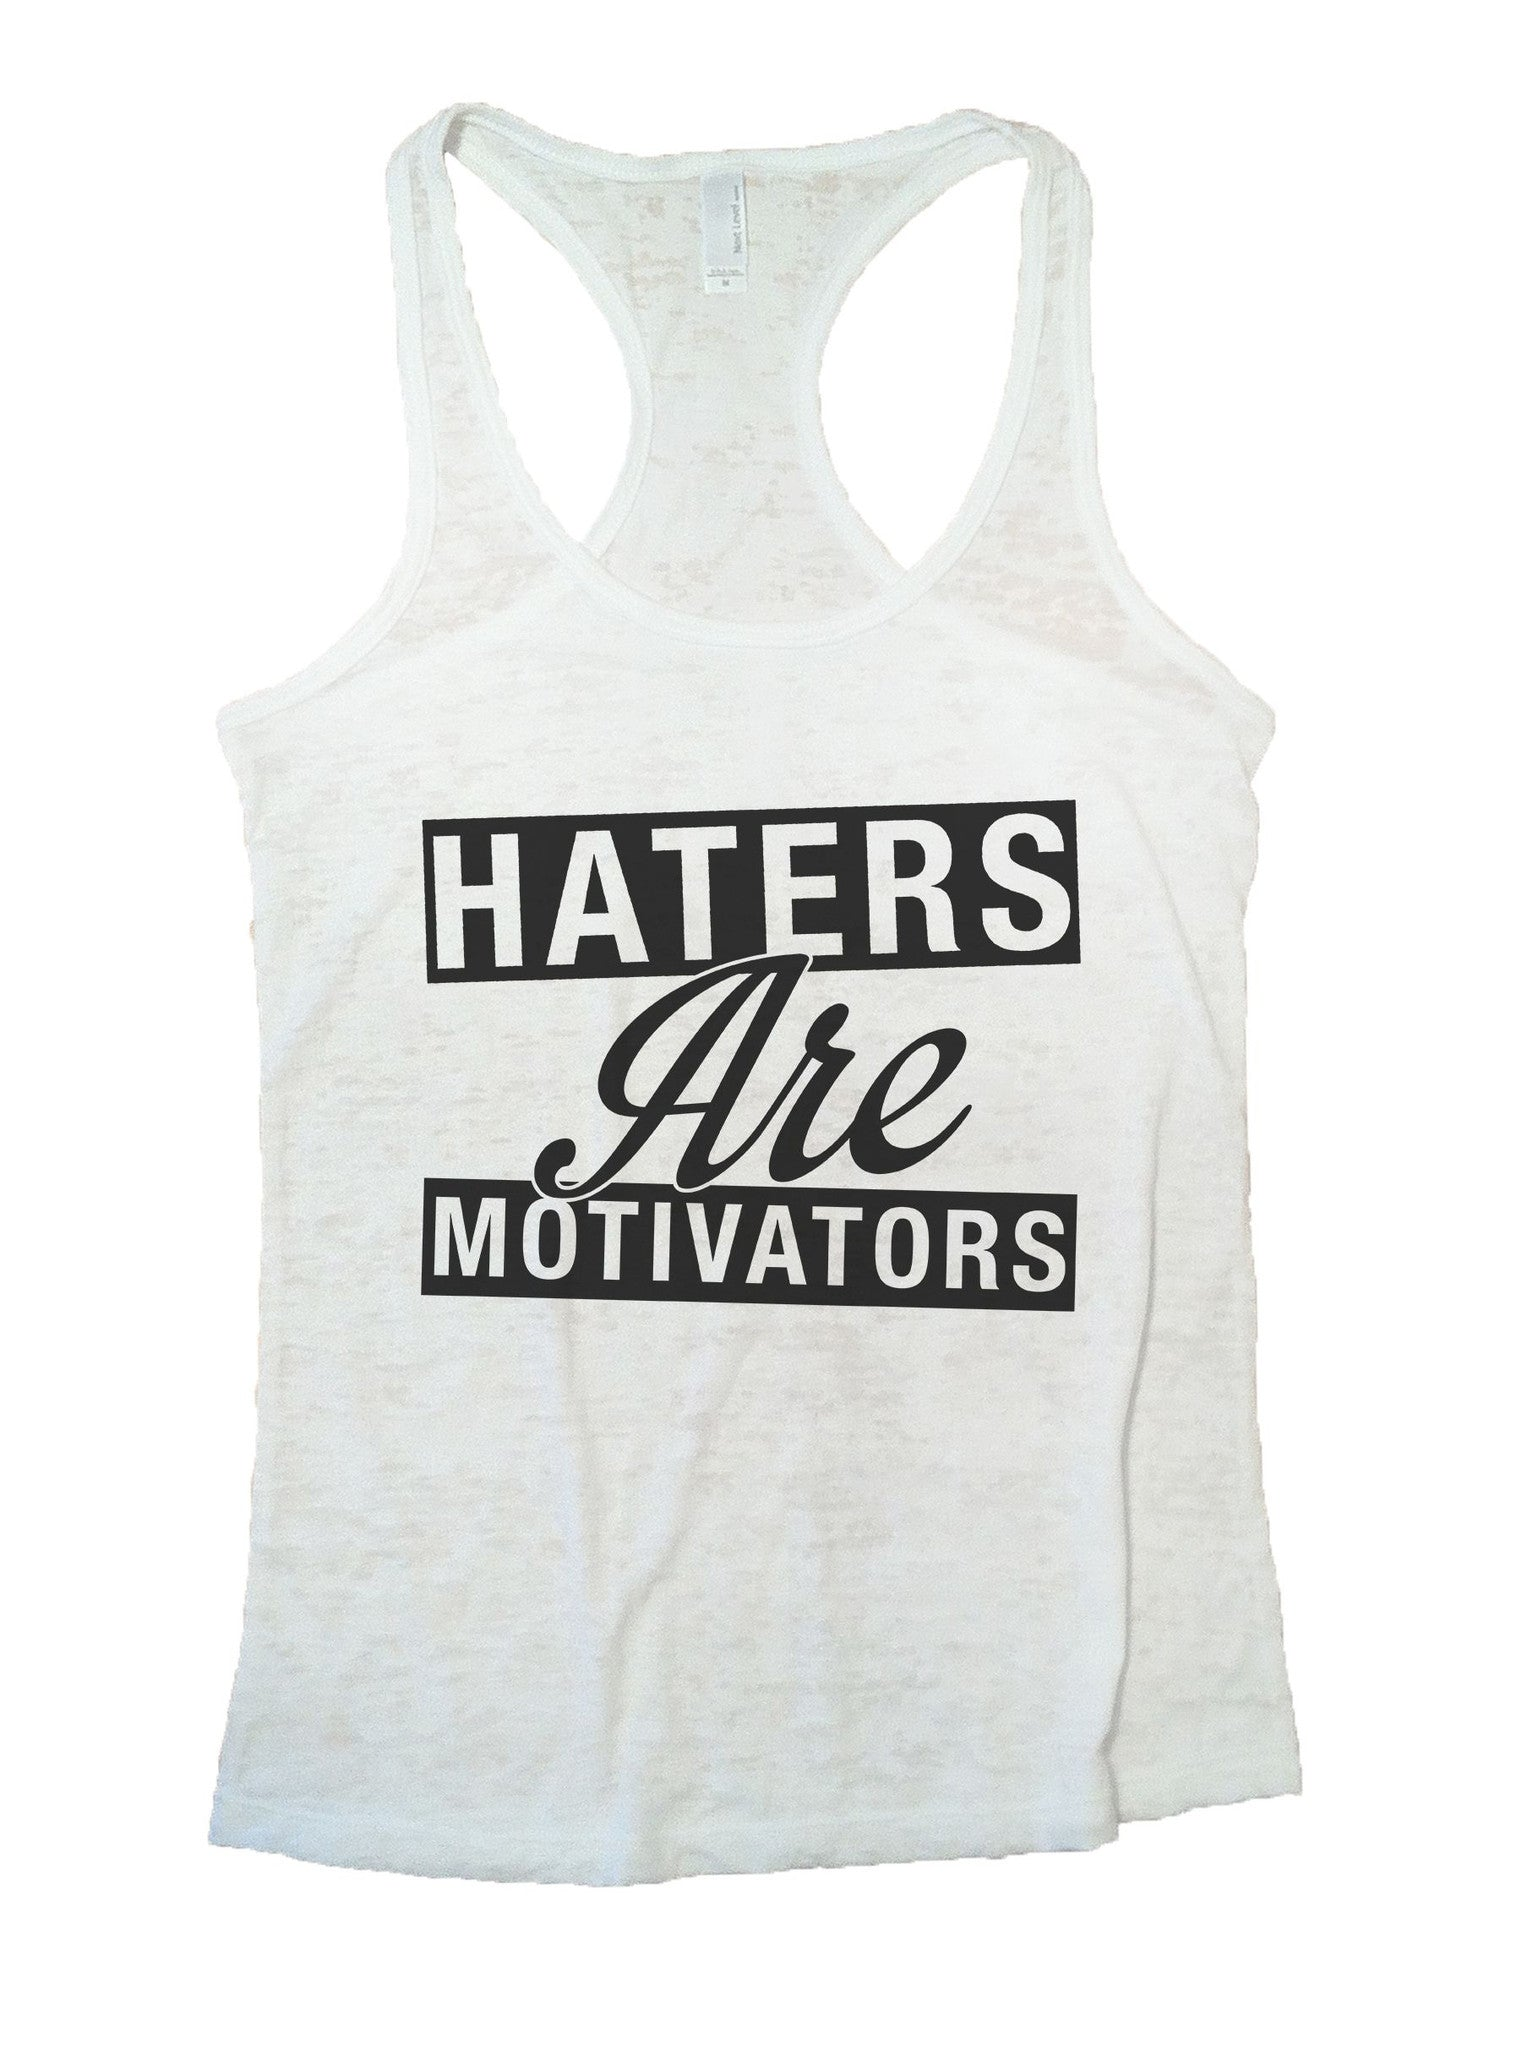 Haters Are Motivators Burnout Tank Top By BurnoutTankTops.com - 842 - Funny Shirts Tank Tops Burnouts and Triblends  - 6